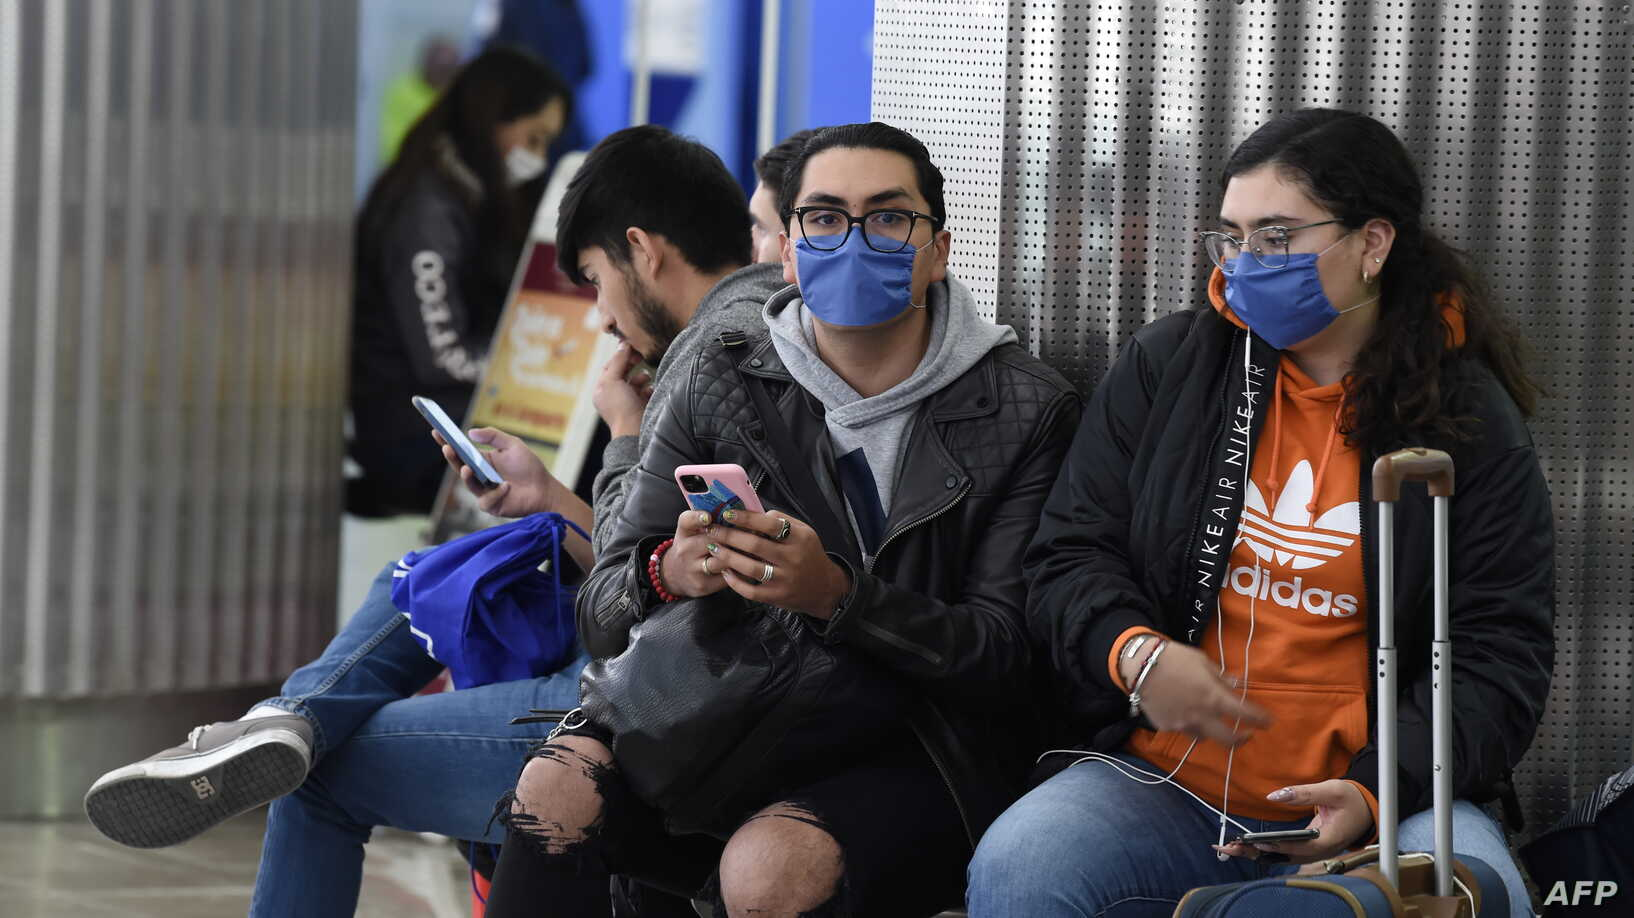 Mexico confirms fourth coronavirus case, all linked to Italy